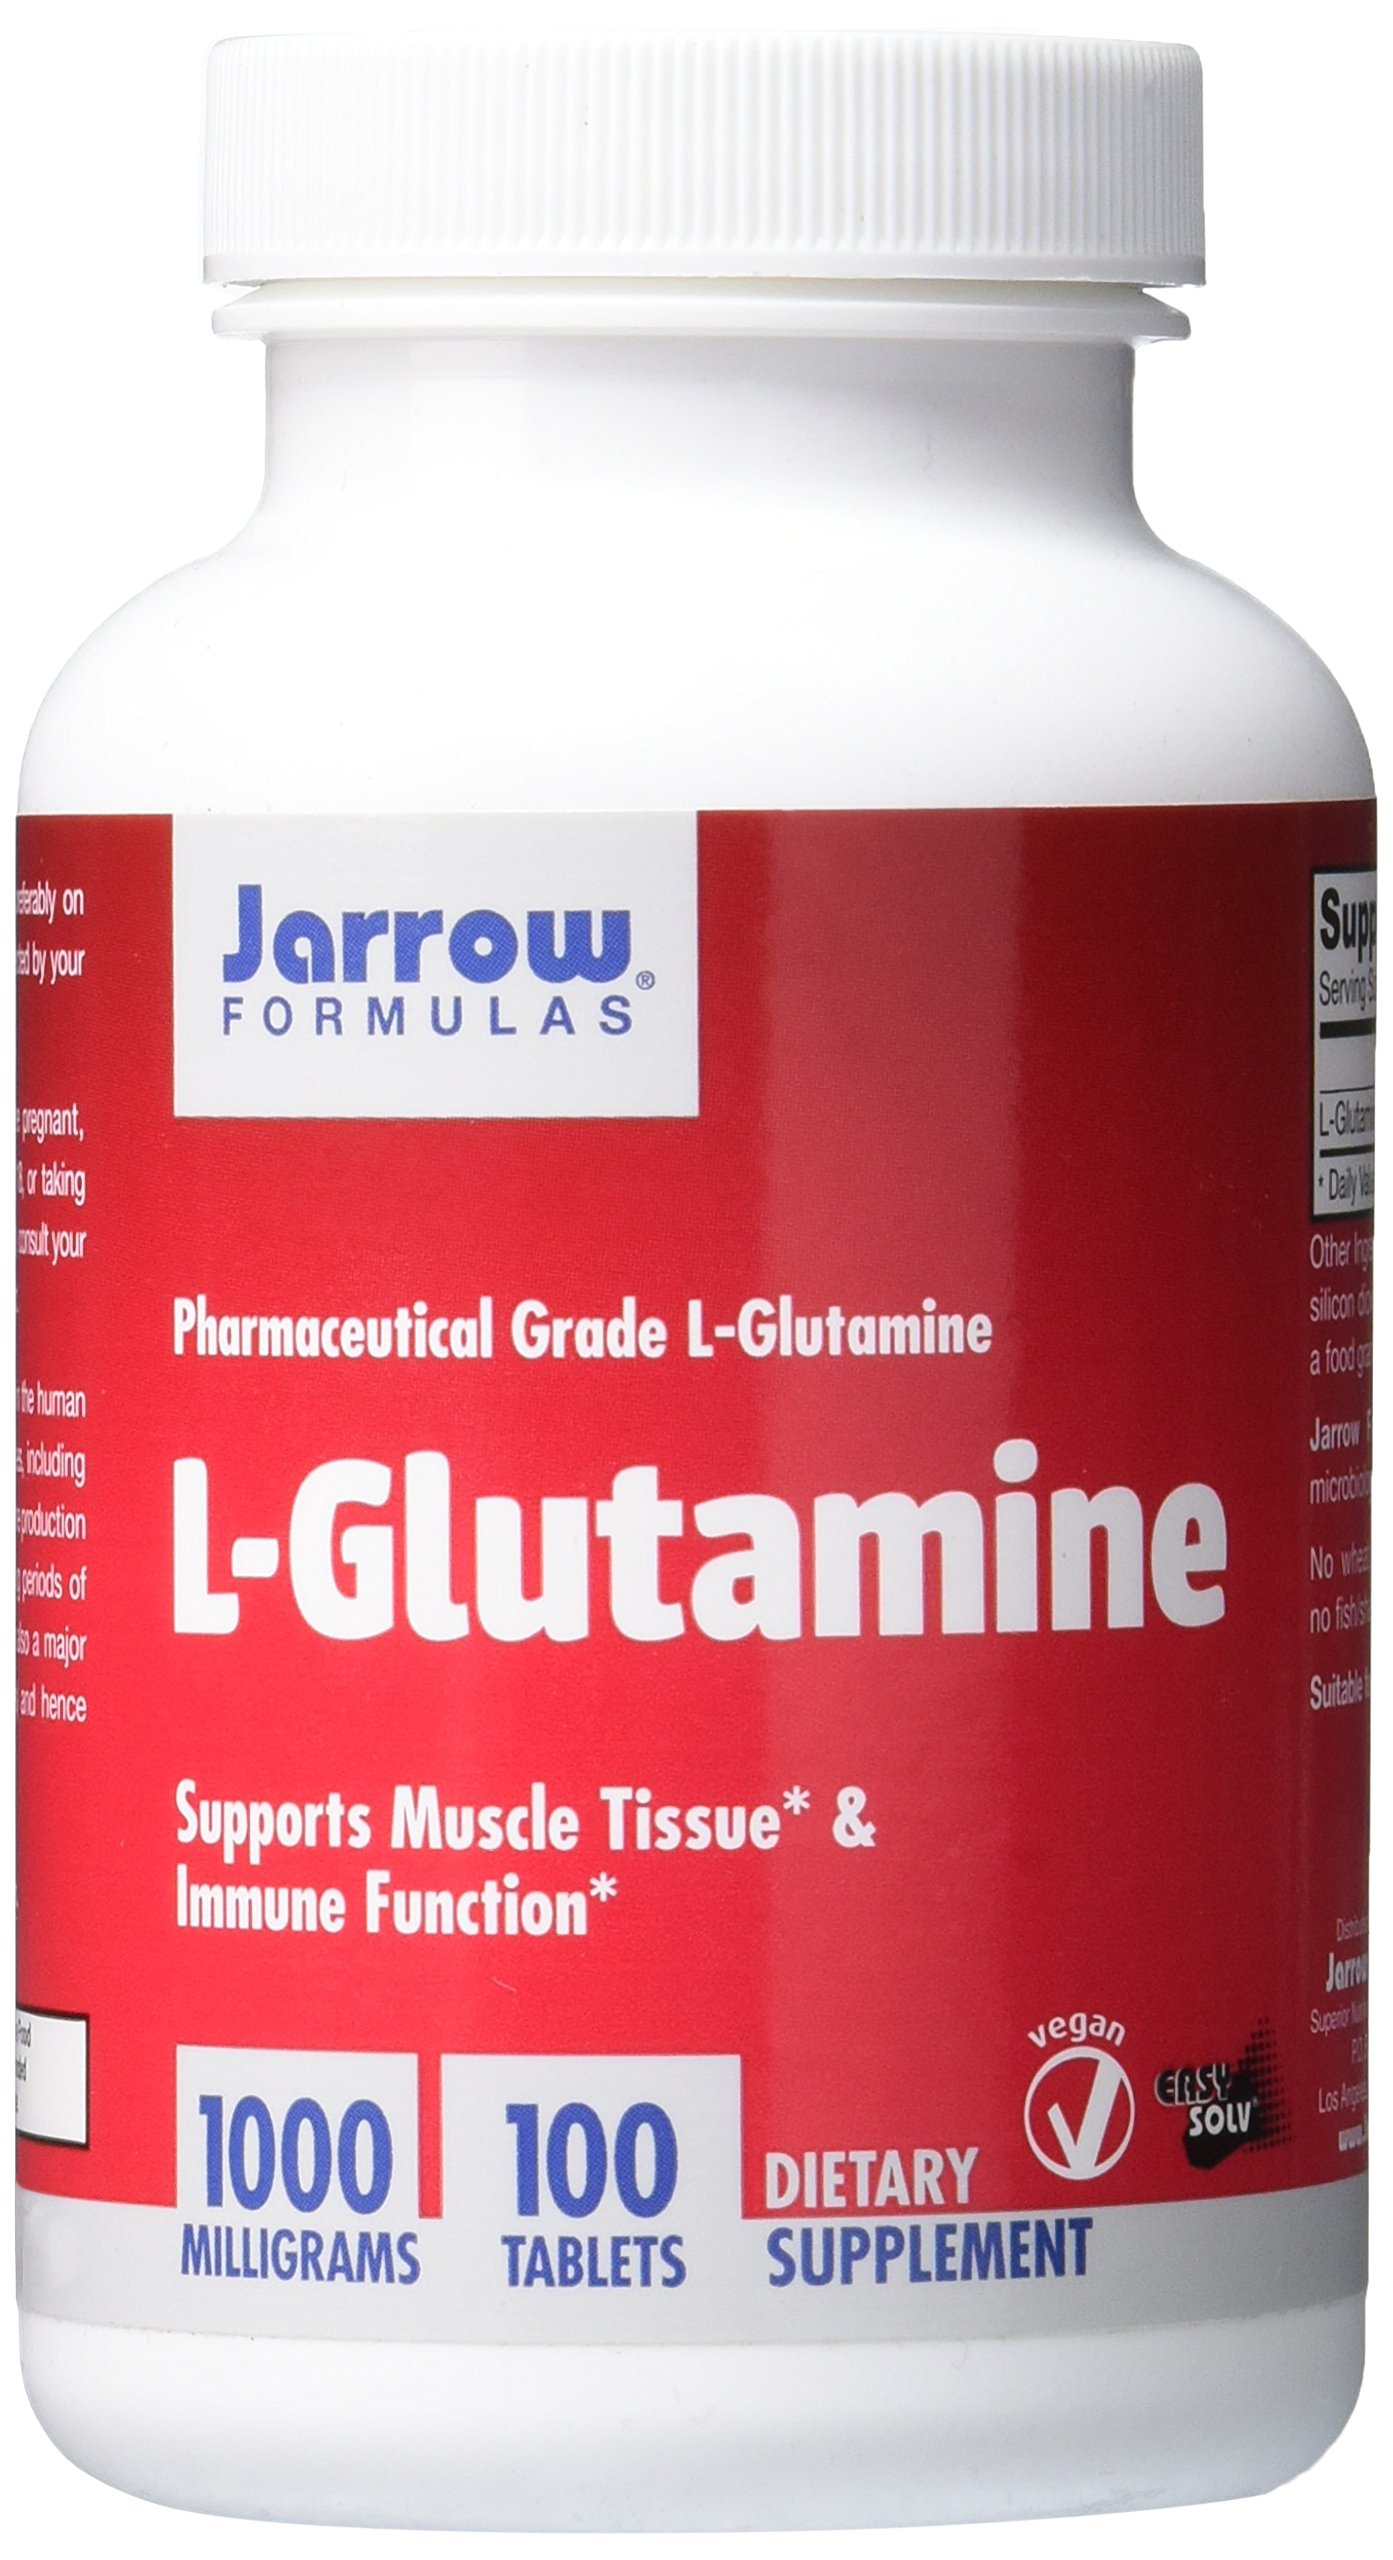 Jarrow Formulations Jarrow L-glutamine, Supports Muscle Tissue & Immune Function, 1000 mg, 100 Easy-Solv Tabs